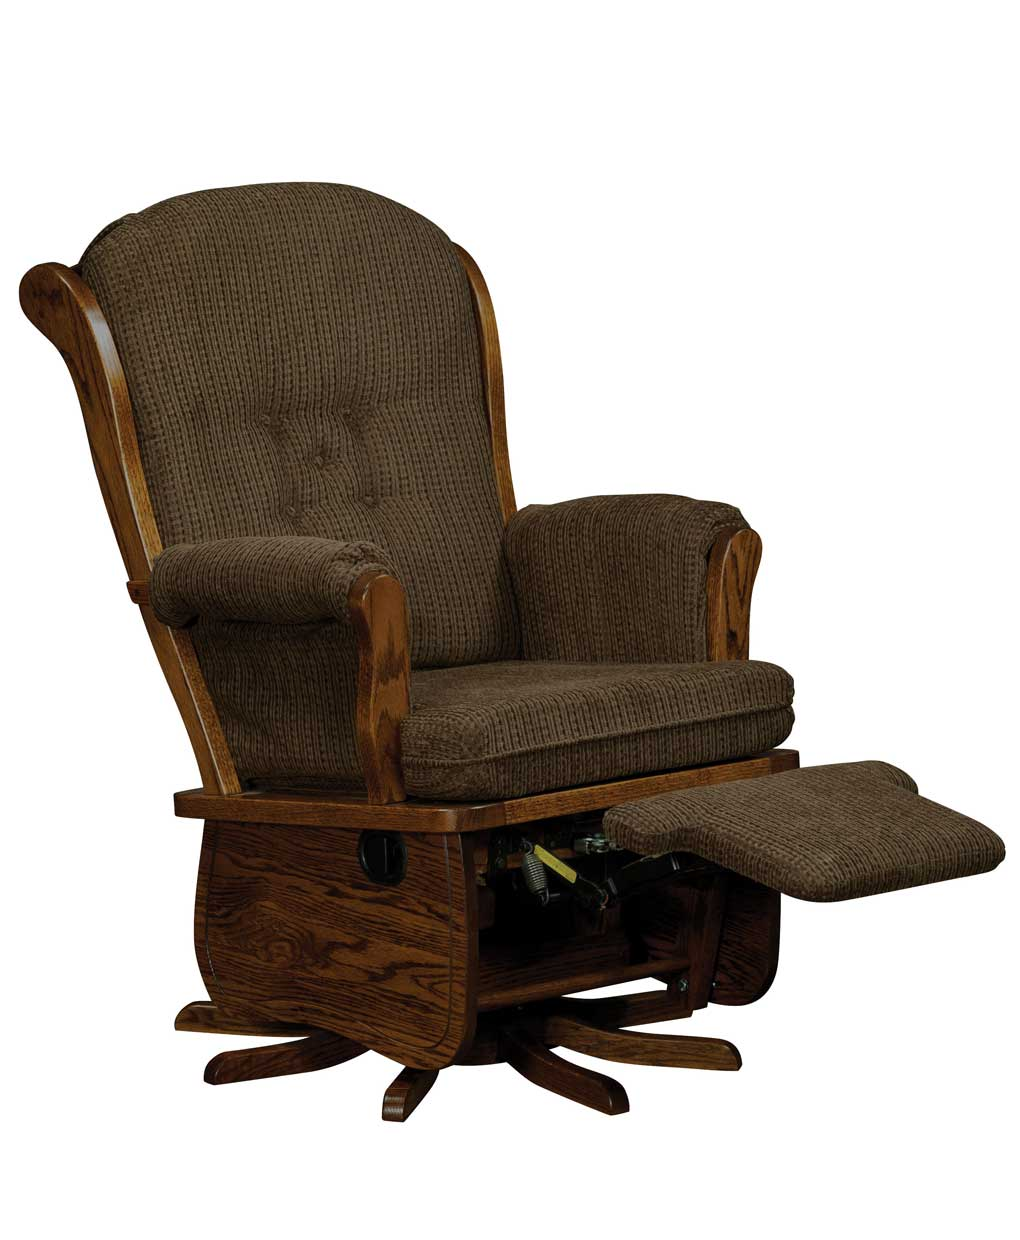 Swanback Swivel Glider - Amish Direct Furniture